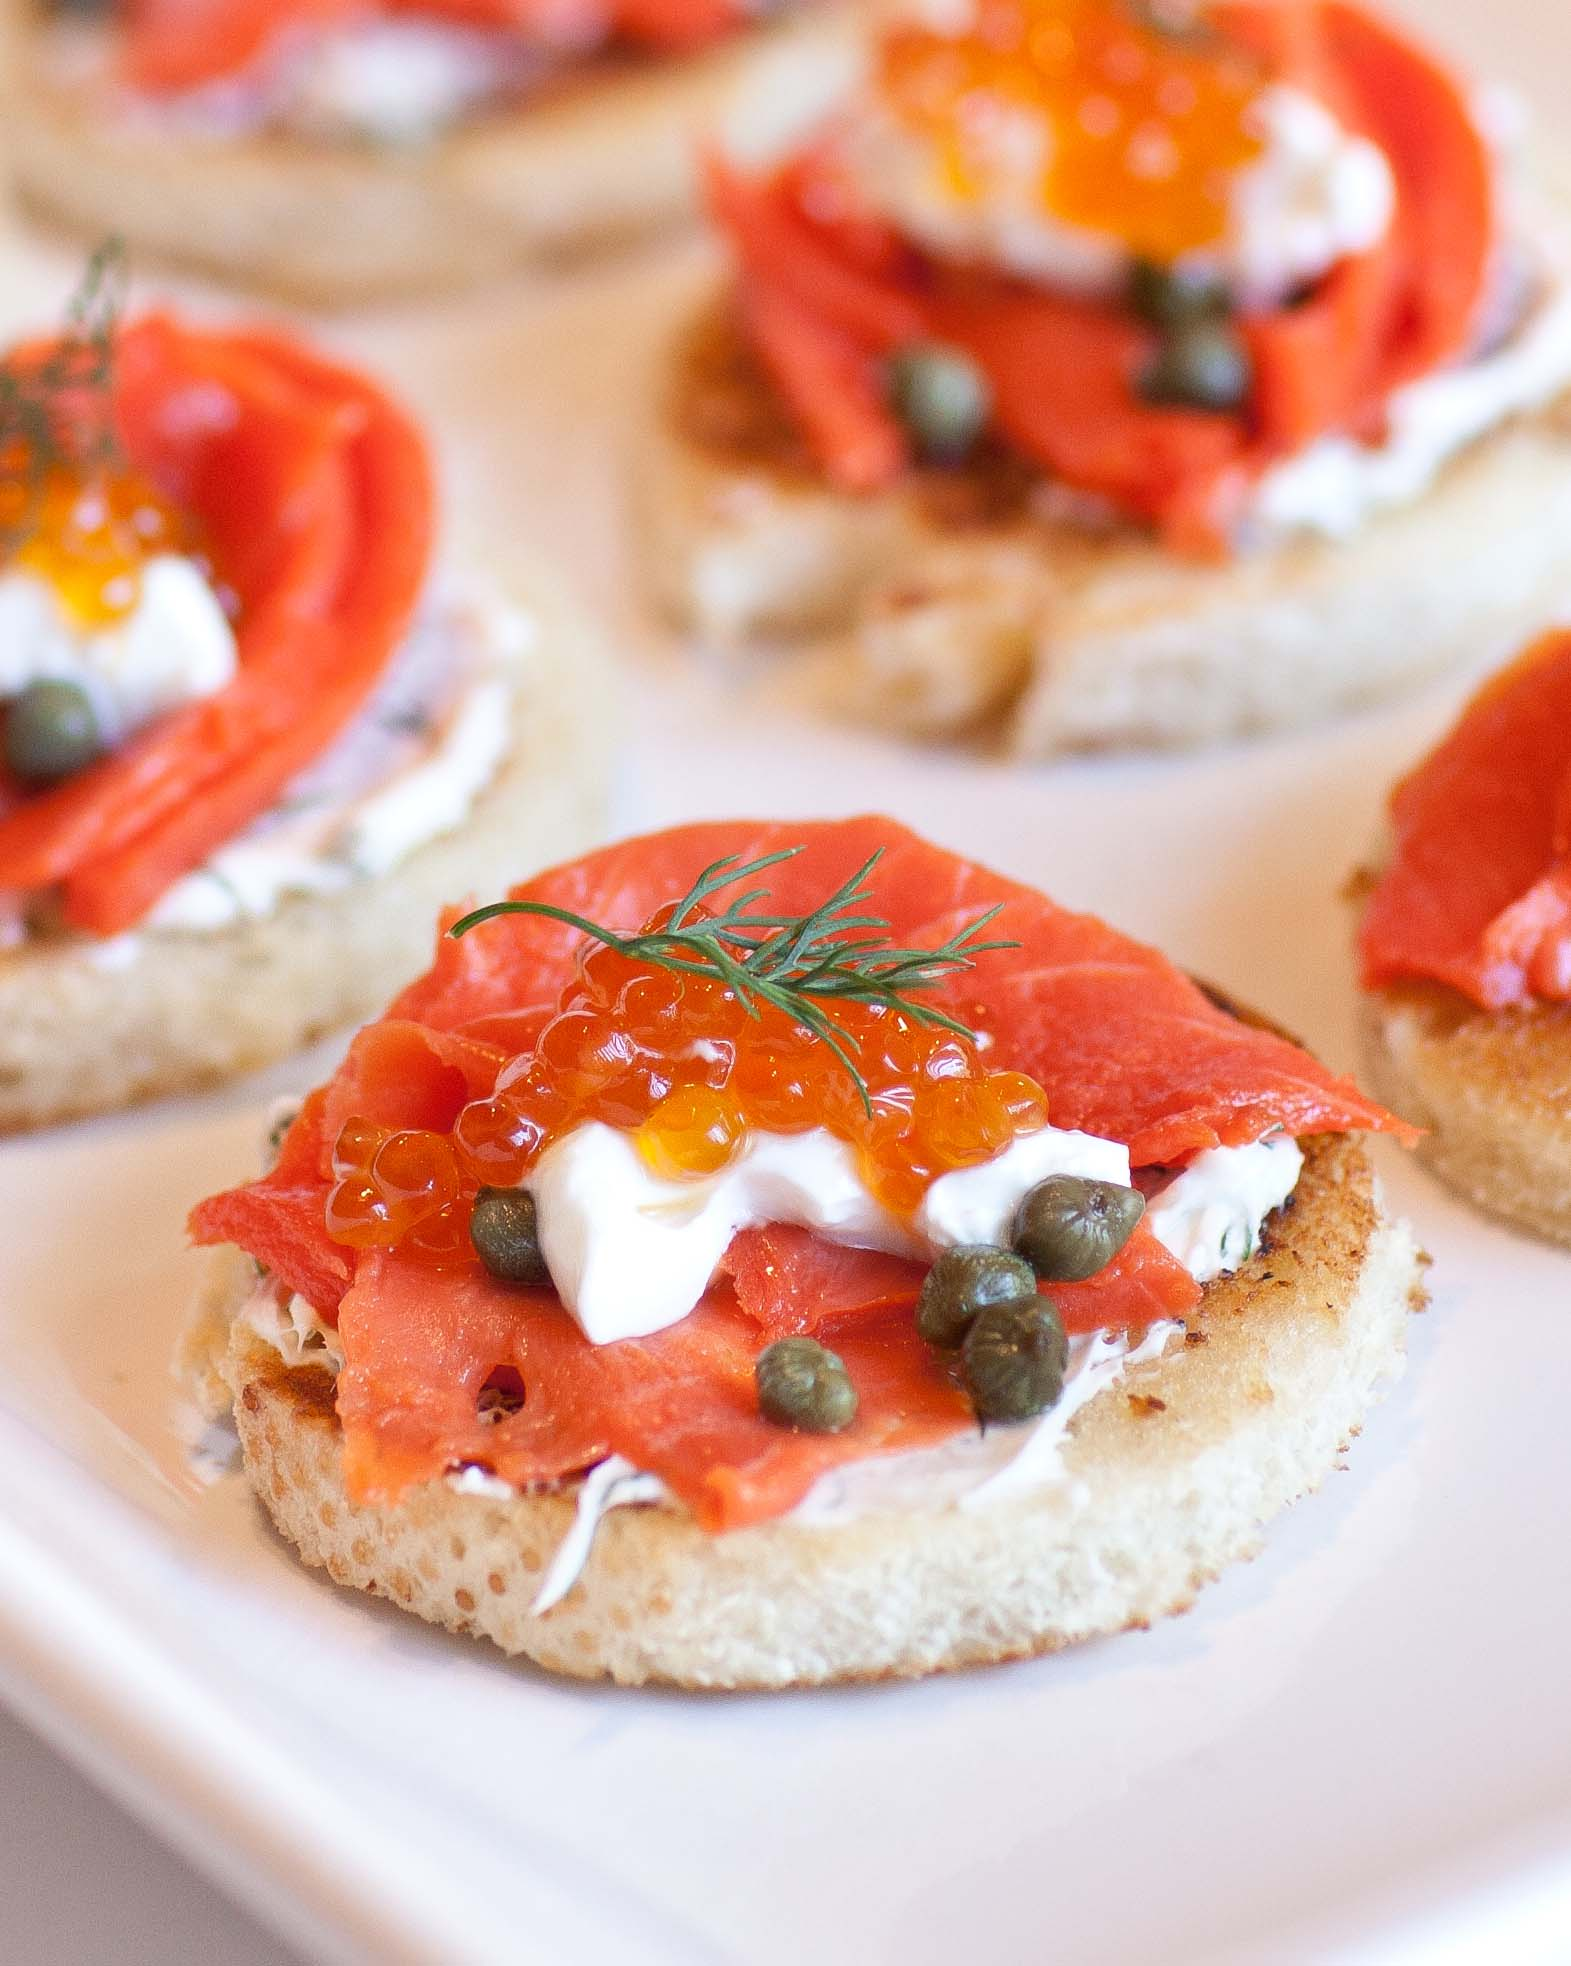 Caviar and smoked salmon canapes topped with capers and dill